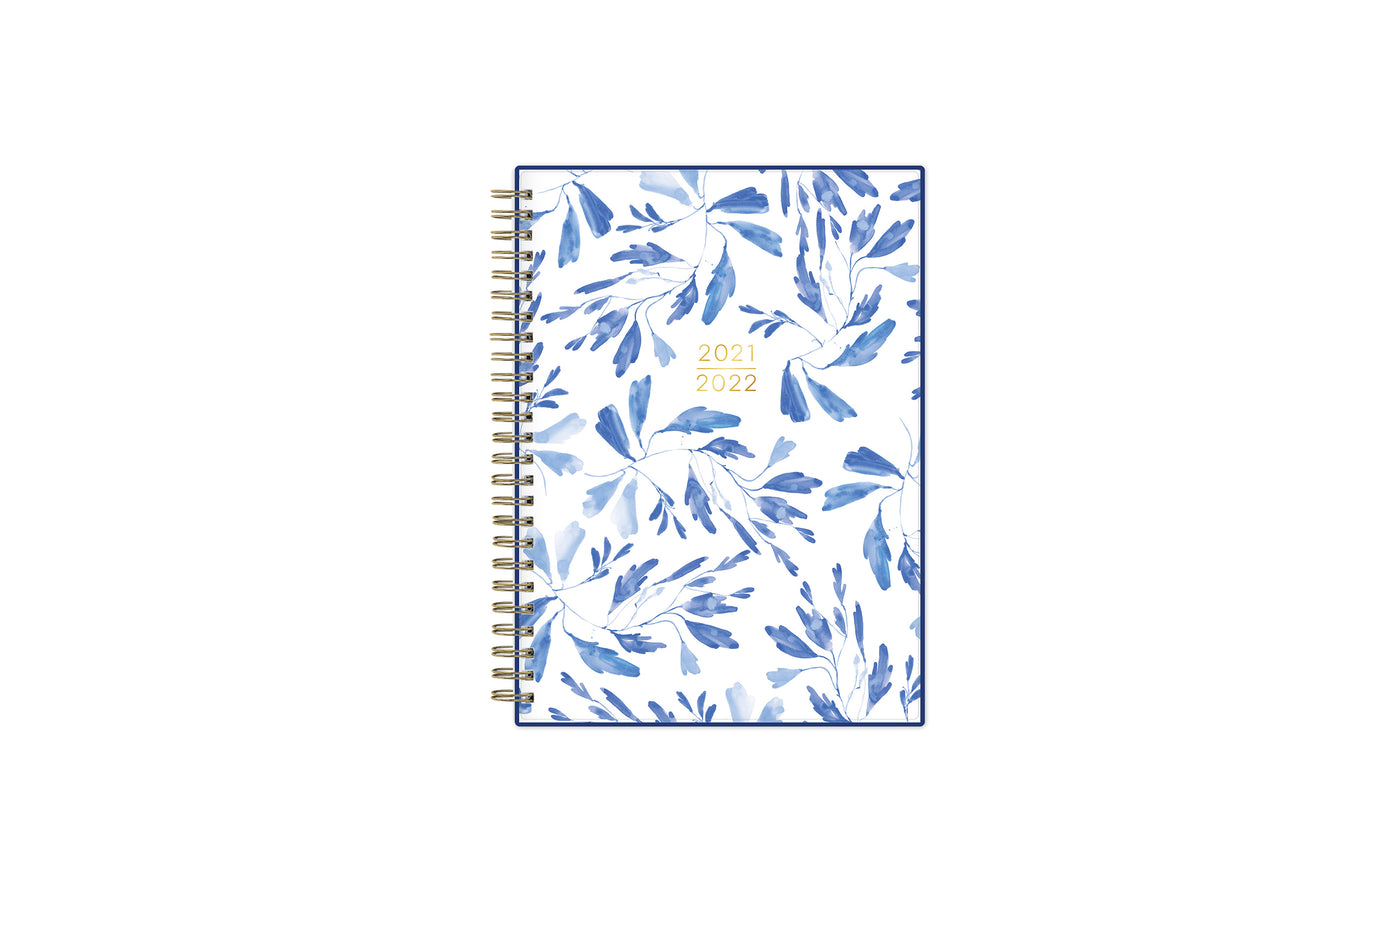 2021-2022 kelly ventura weekly monthly academic planner notes featuring a blue blushed floral cover, twin wire-o binding, in 5.875x8.625 planner size